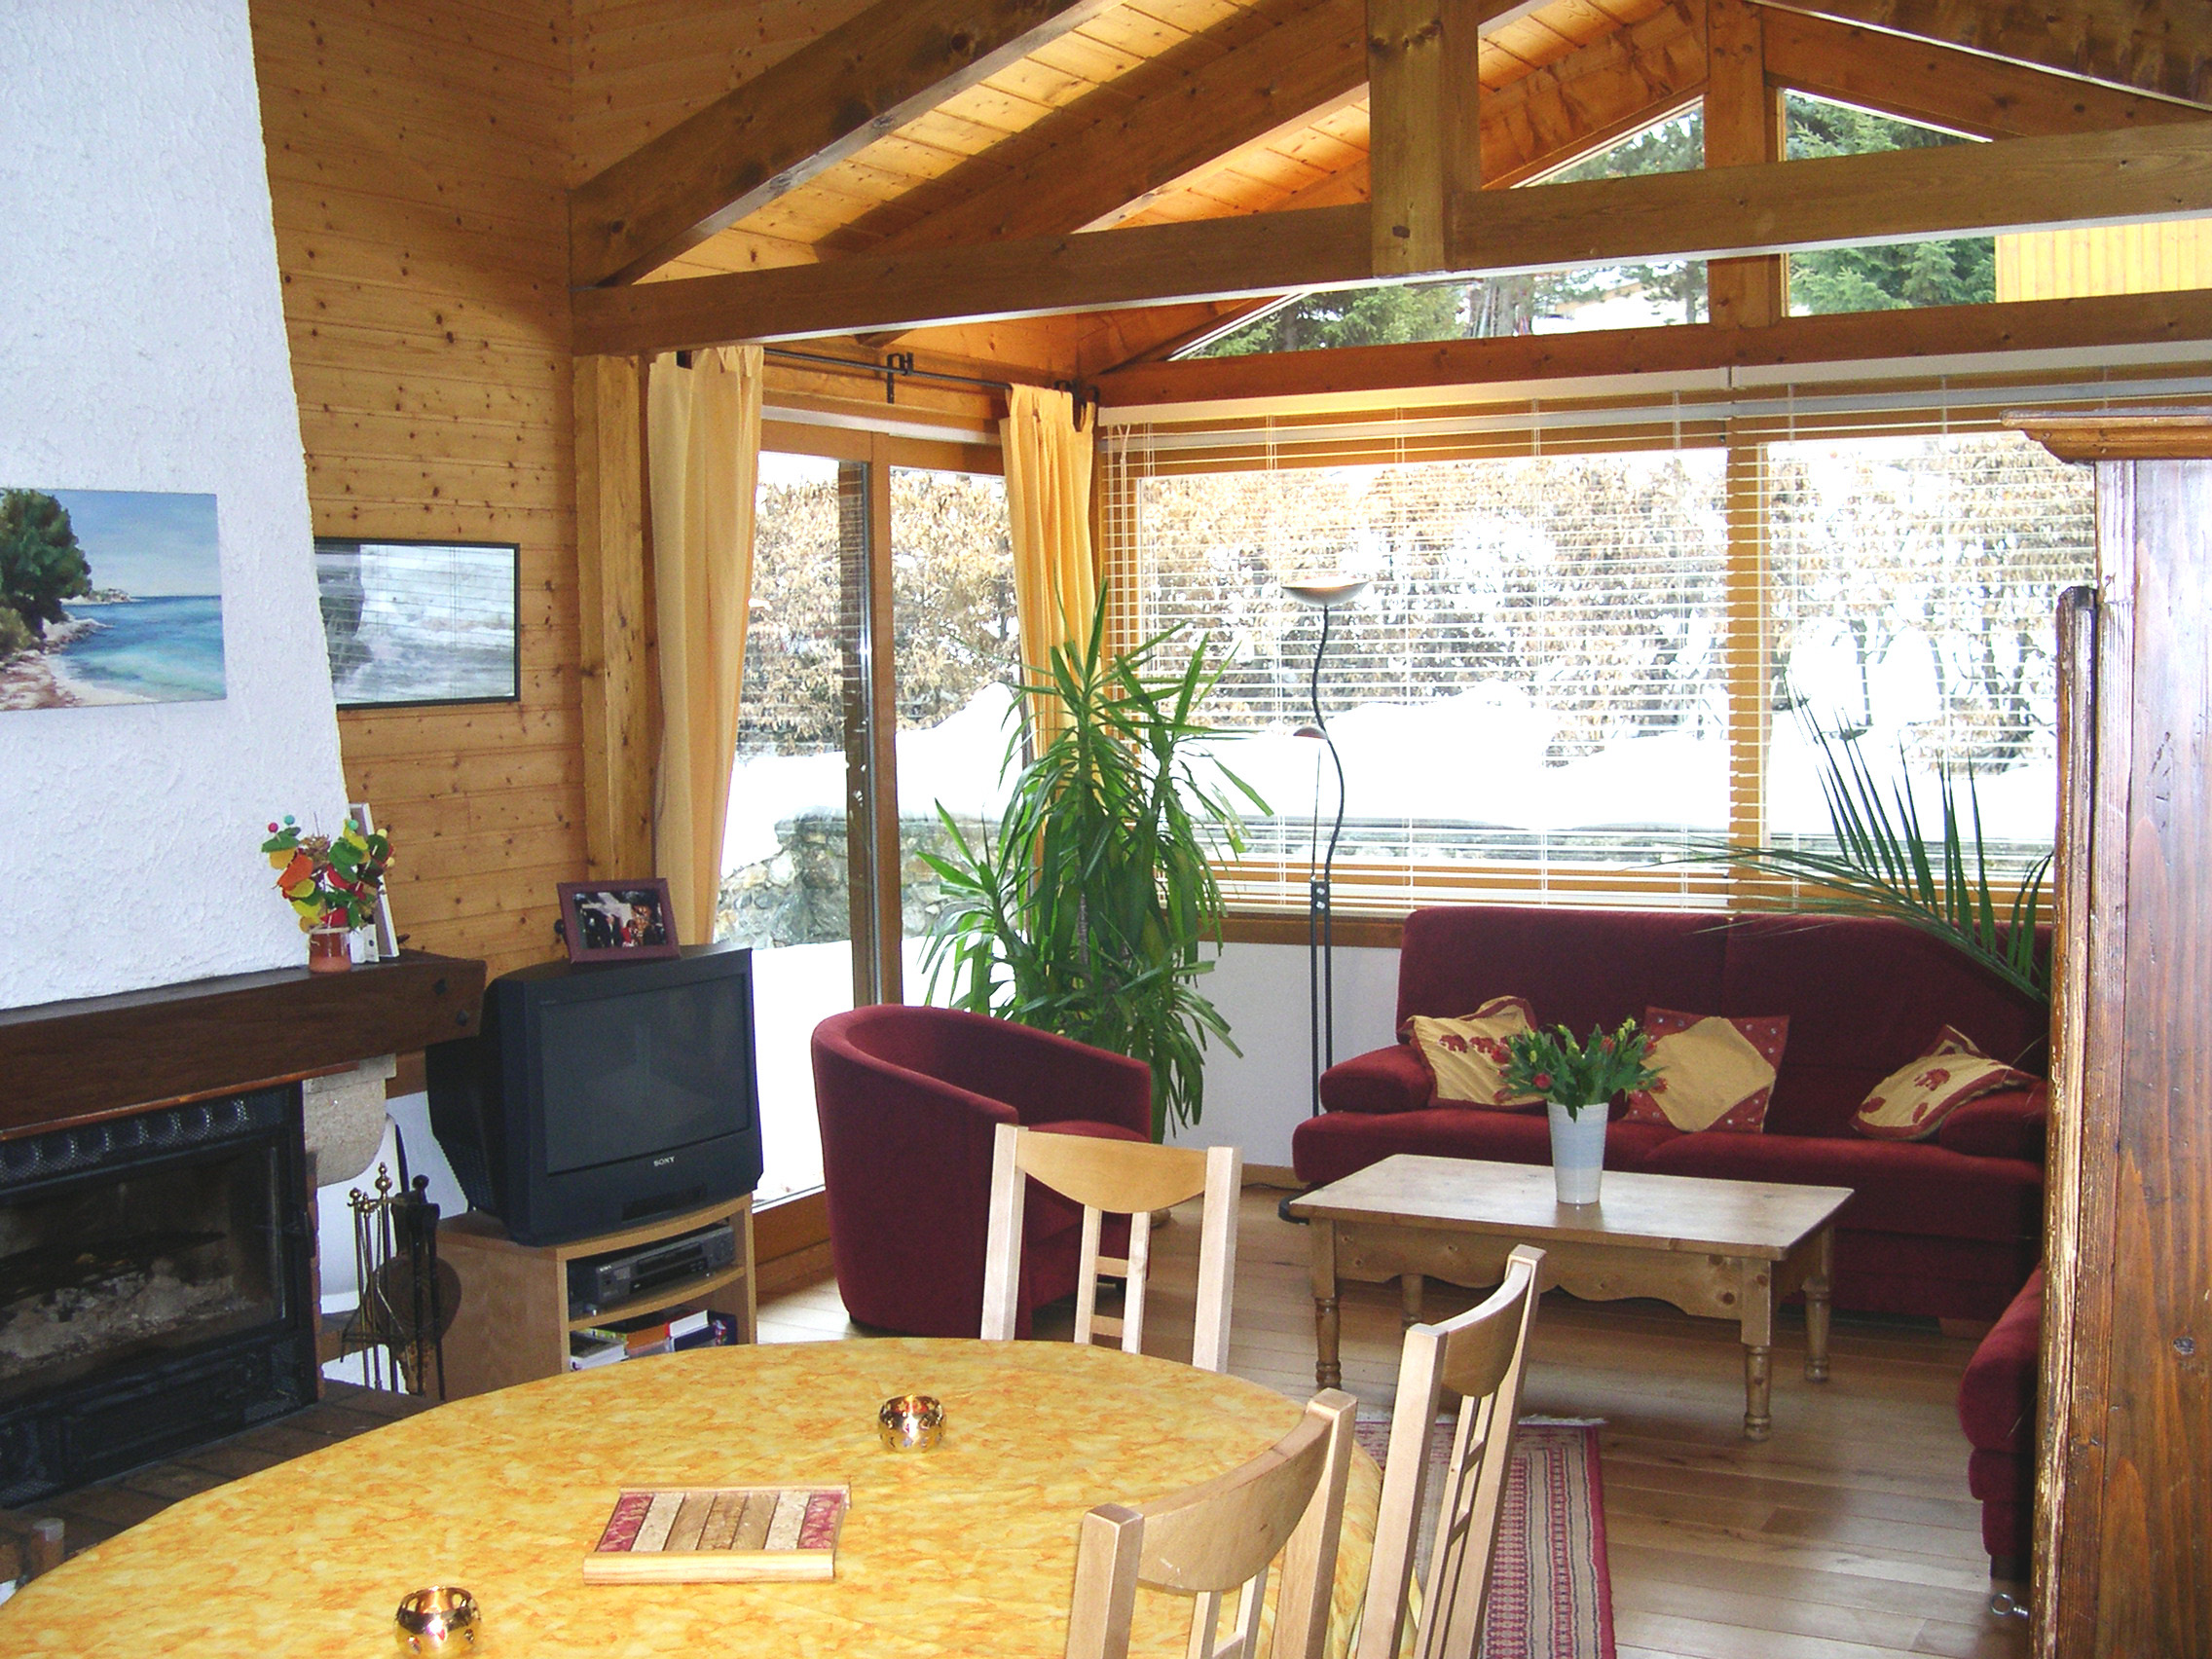 Chalet Jon, Les Deux Alpes (self catered chalet) - Lounge